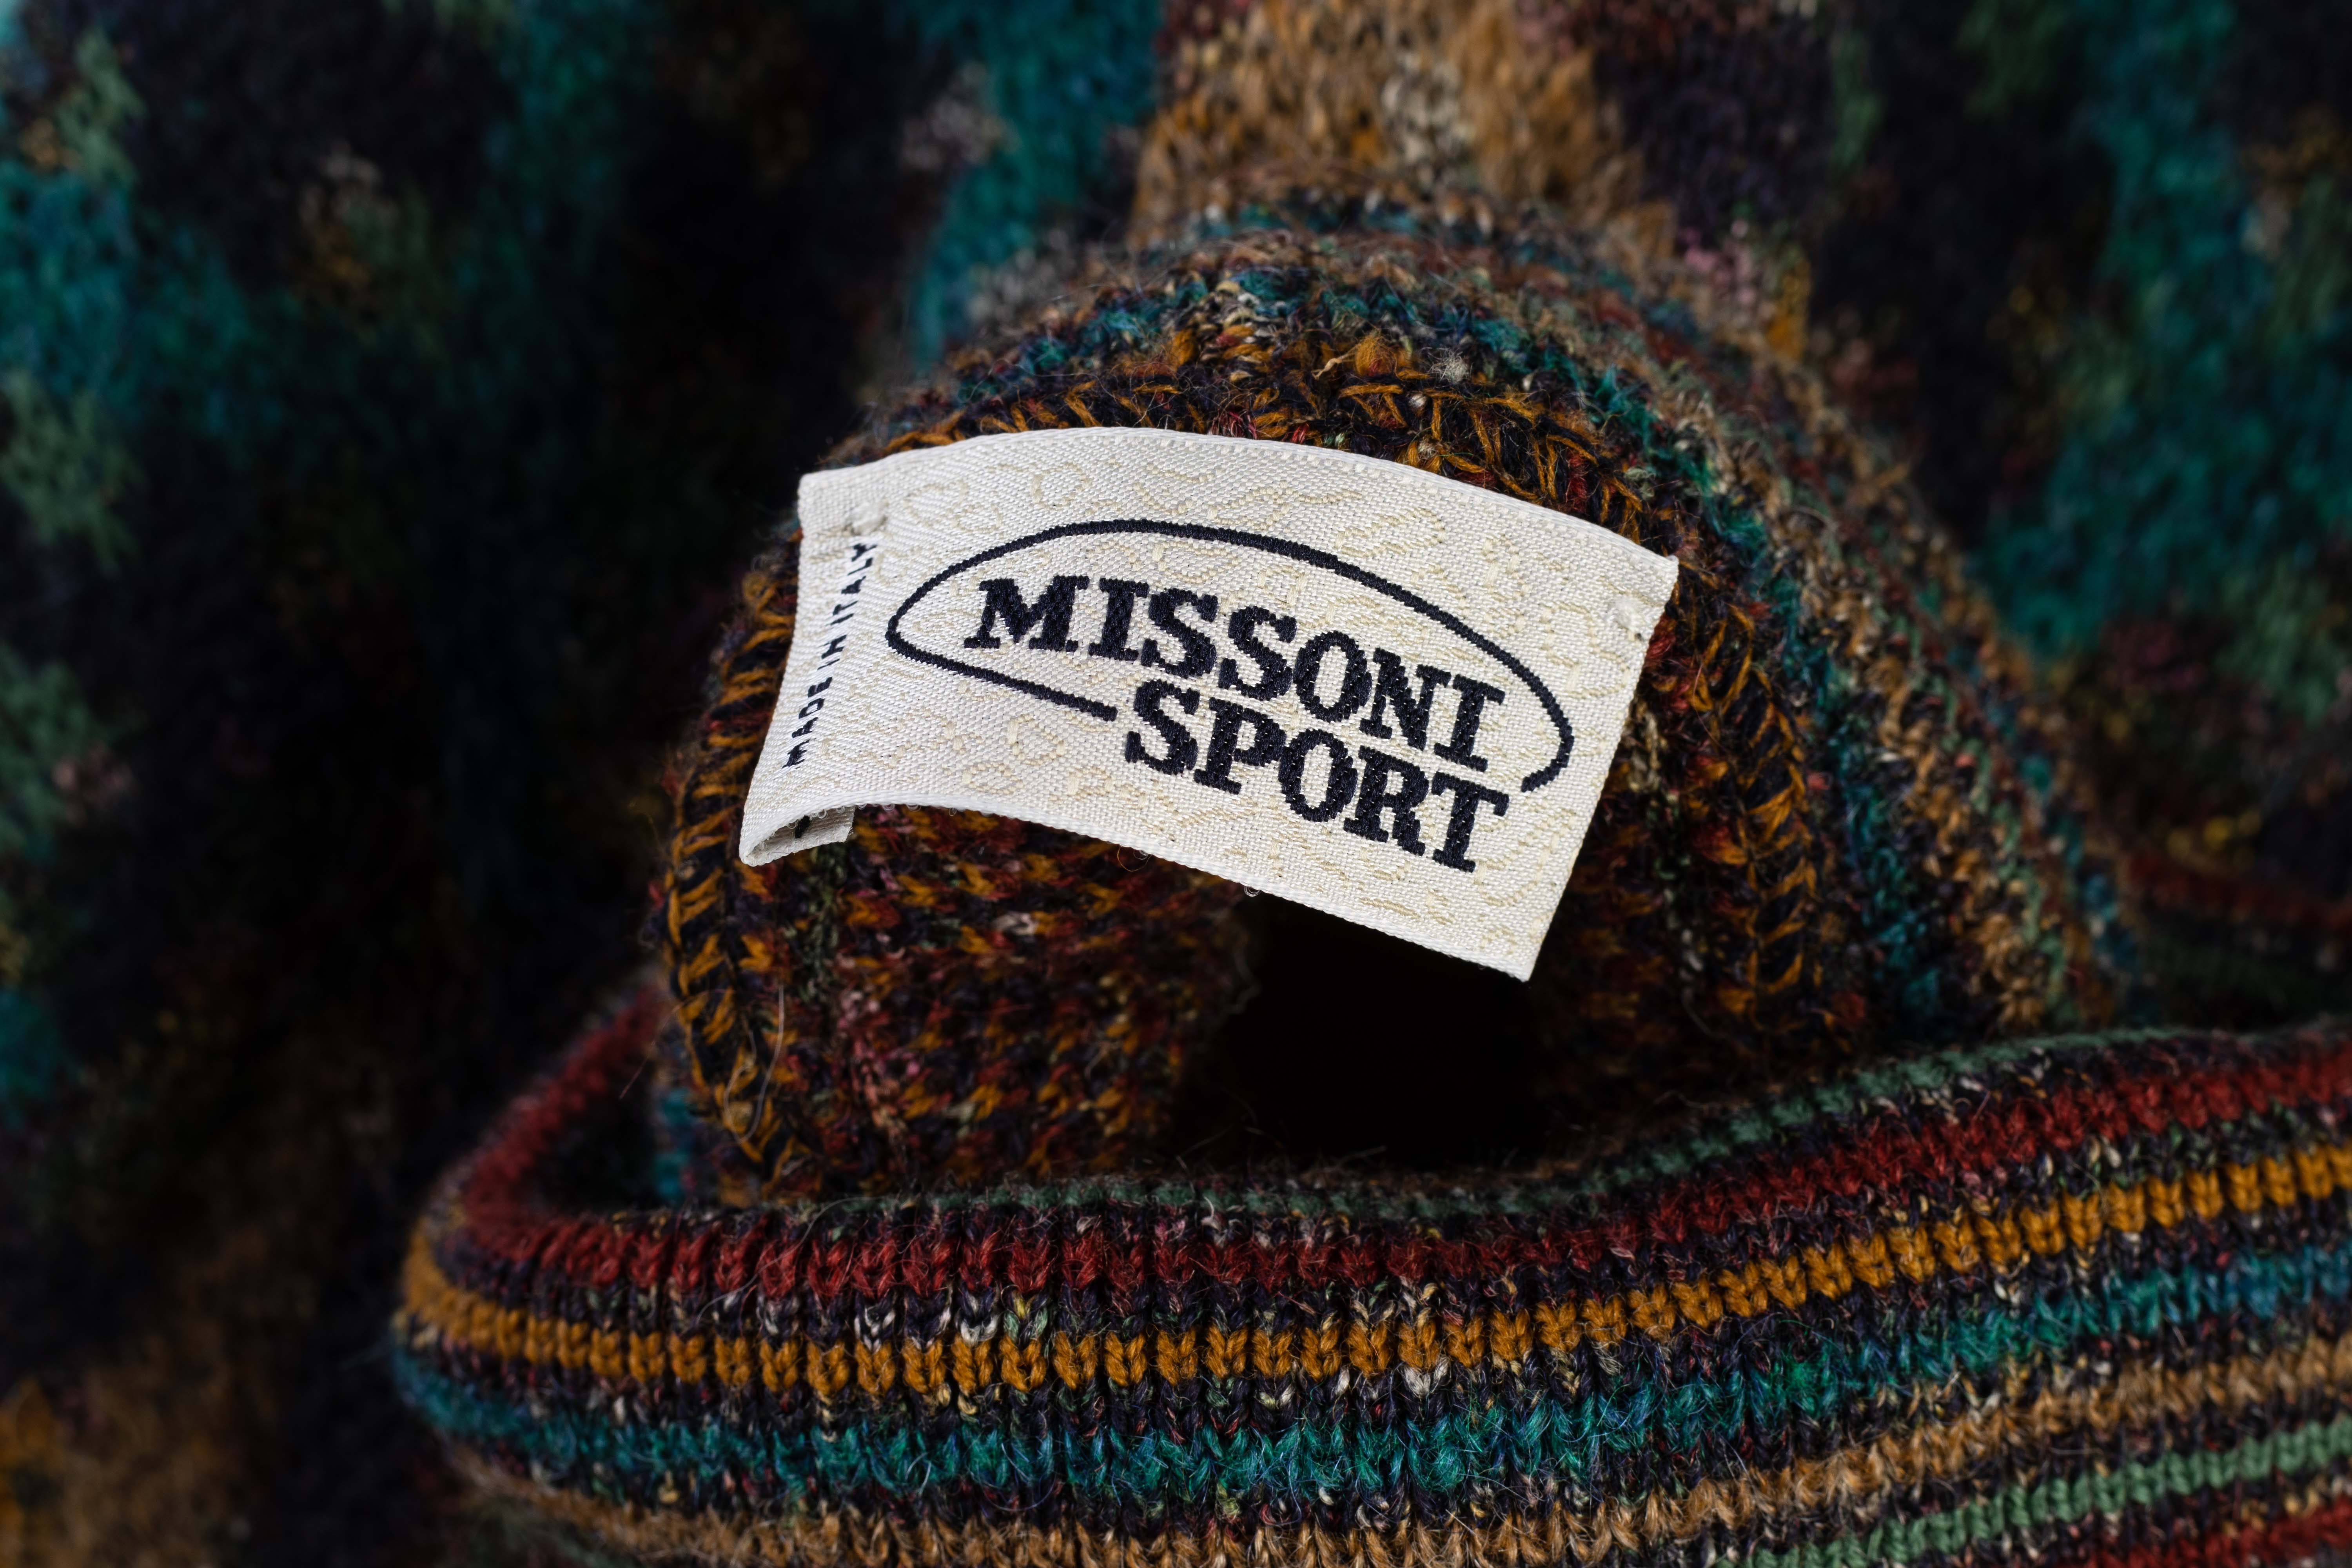 A MISSONI SPORT KNITTED ROLLNECK SWEATER - Image 4 of 4